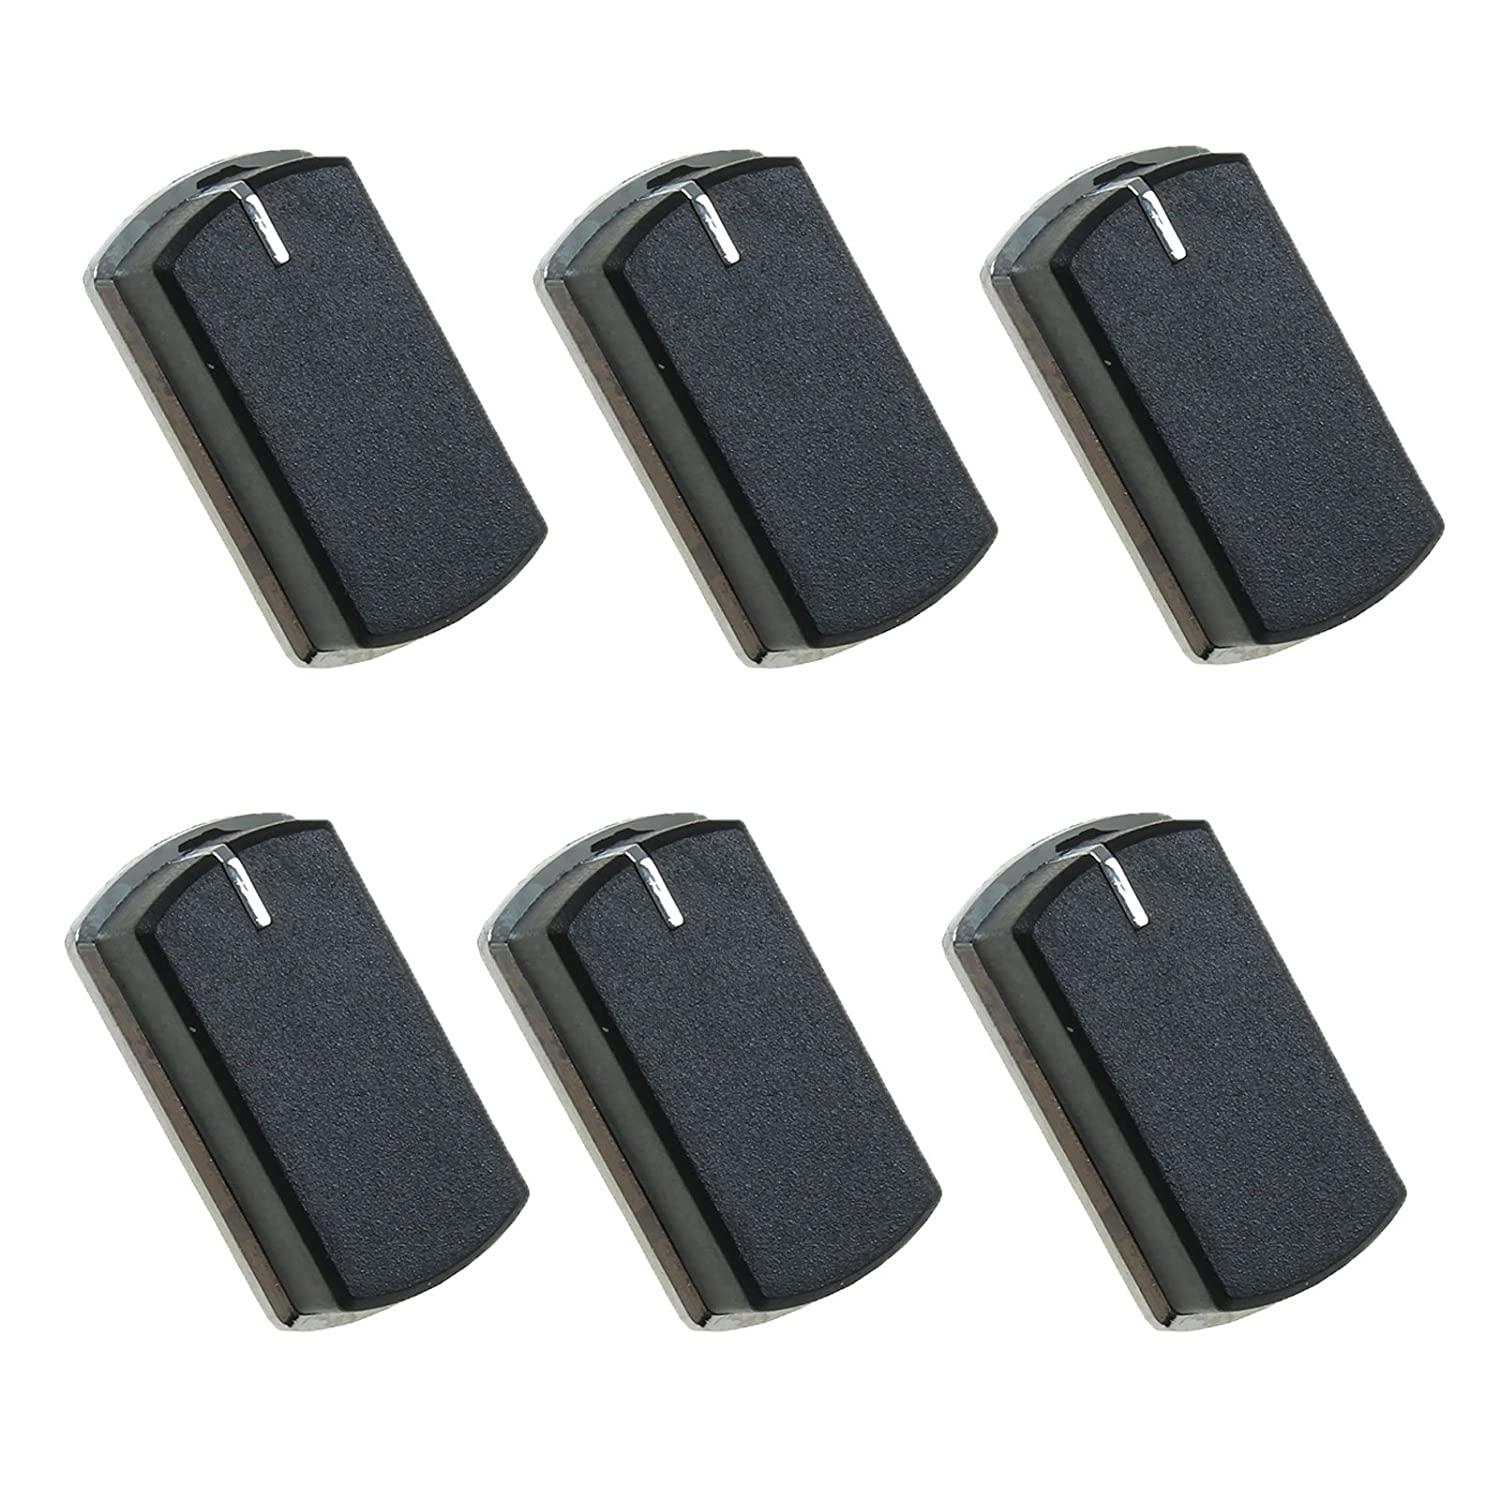 First4Spares Replacement Oven Control Knob for Belling Cookers Ovens Pack of 6 Black//Chrome